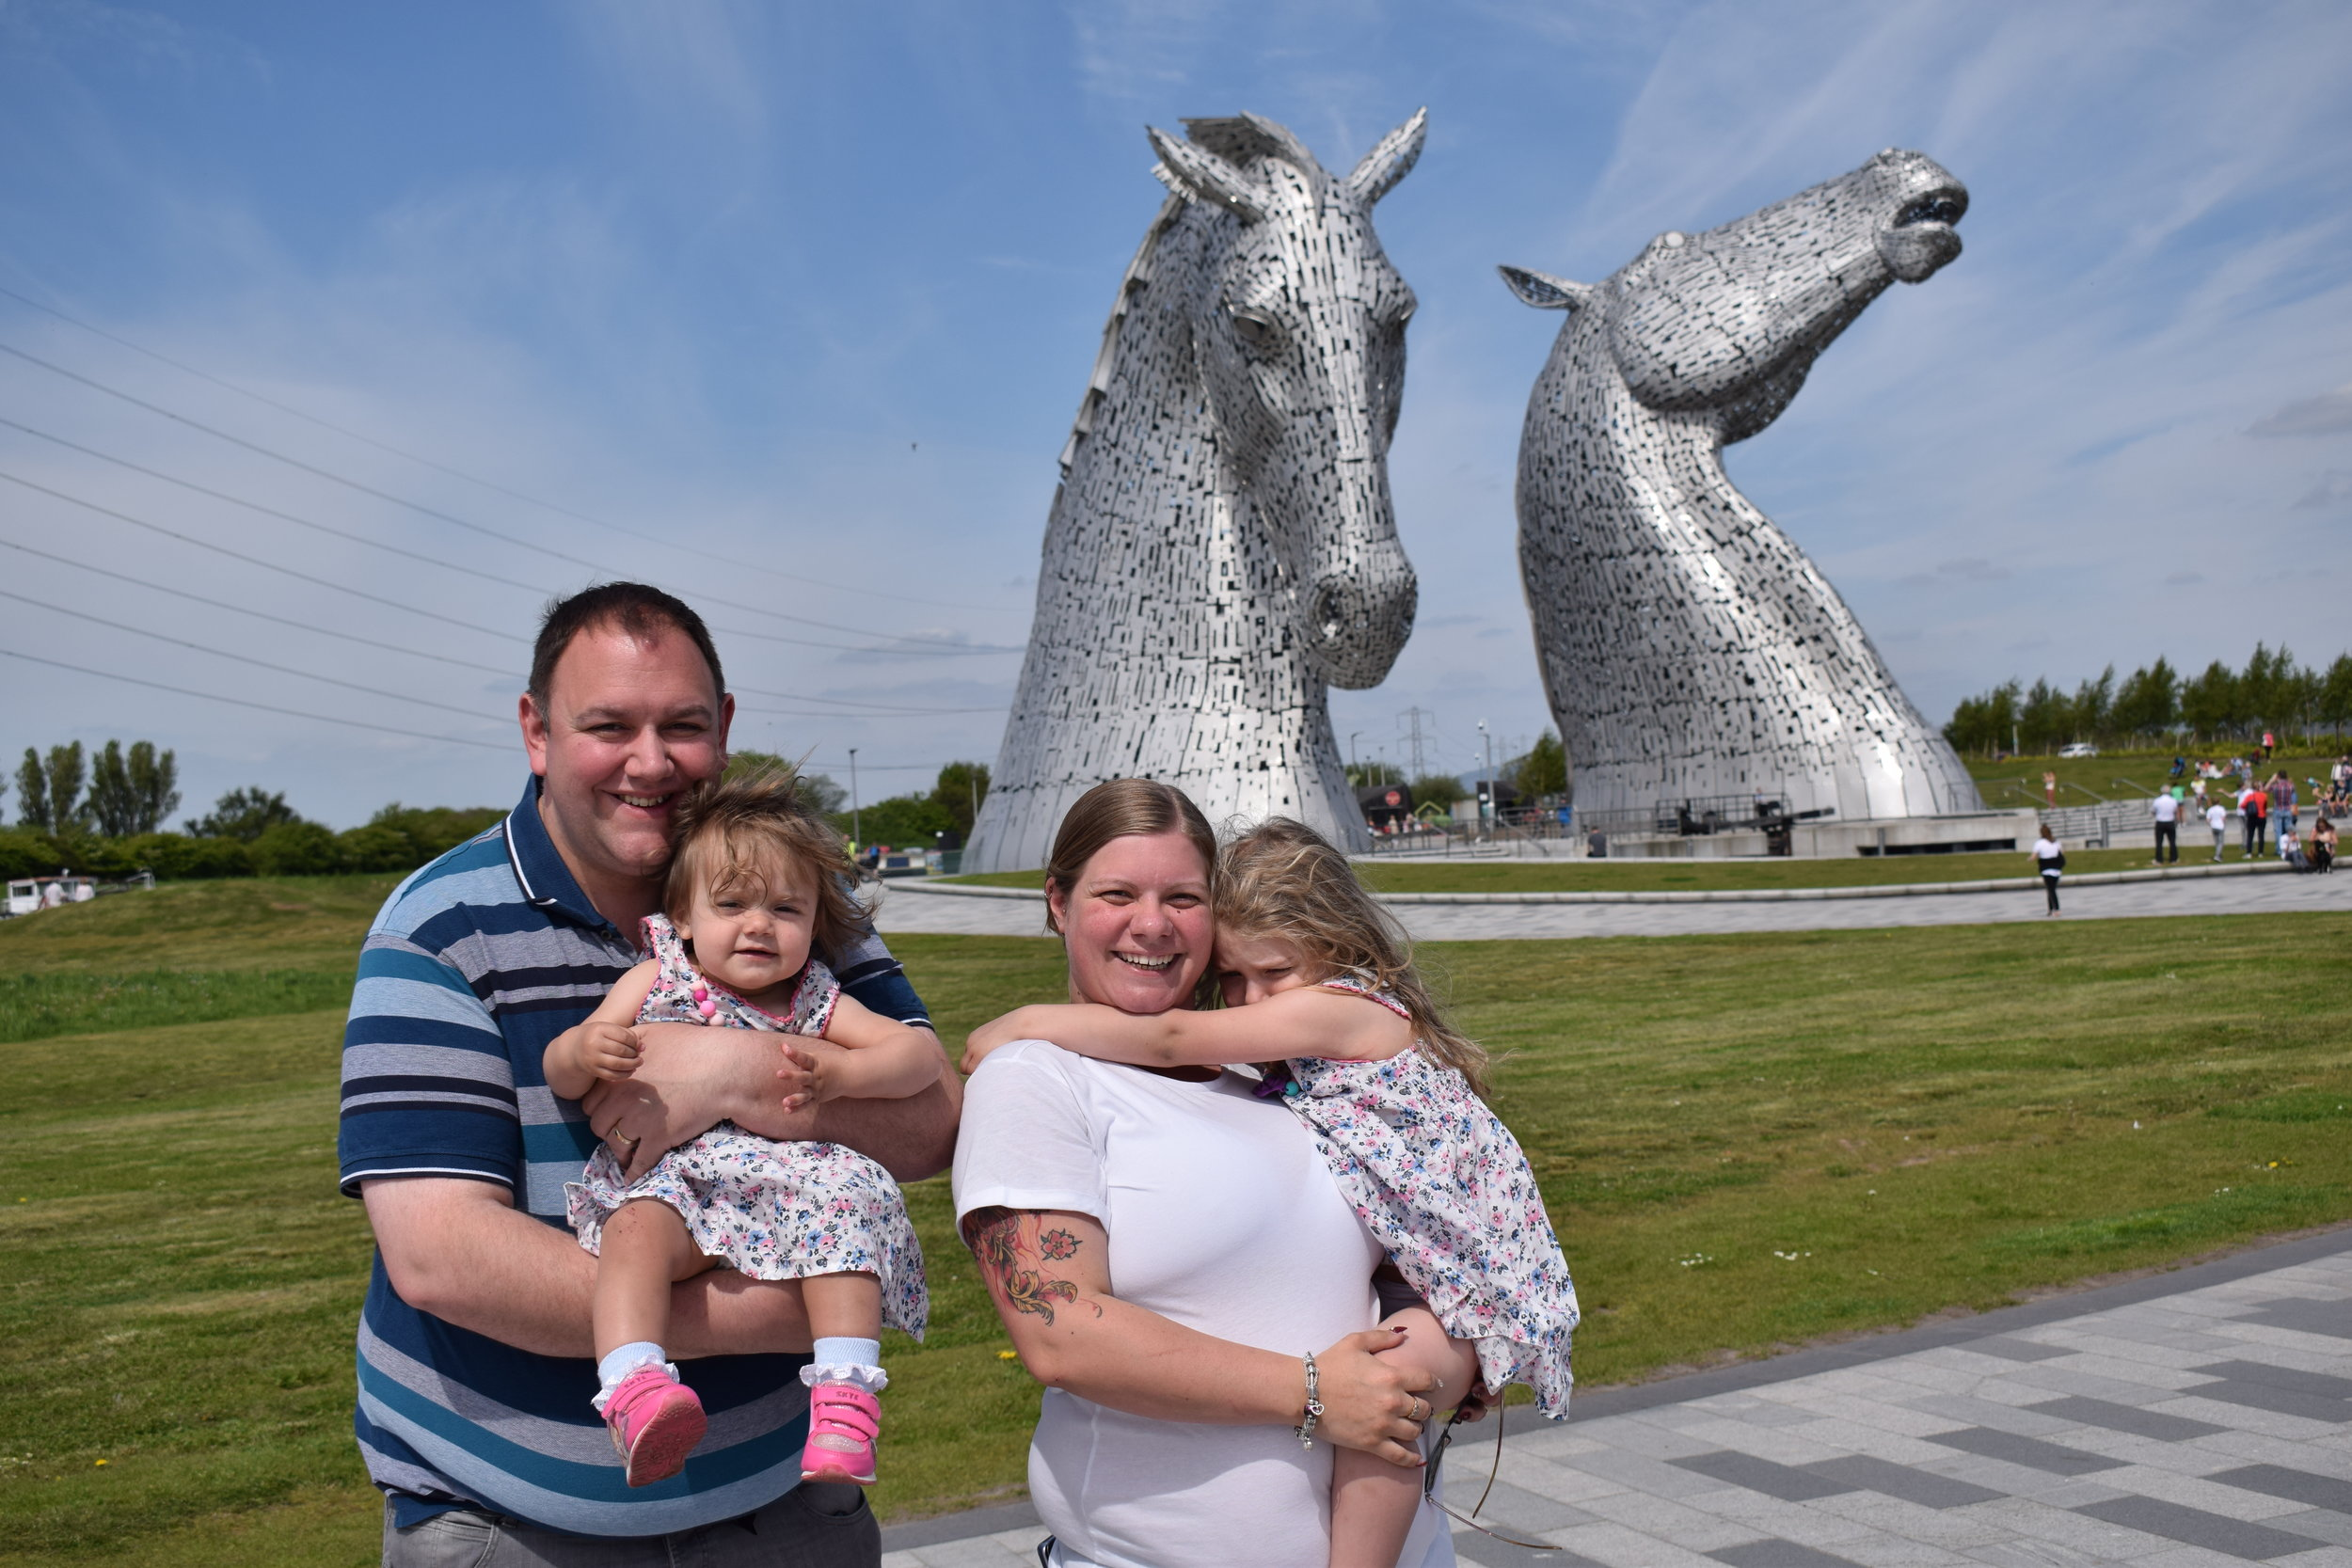 Visiting the Kelpies in Scotland